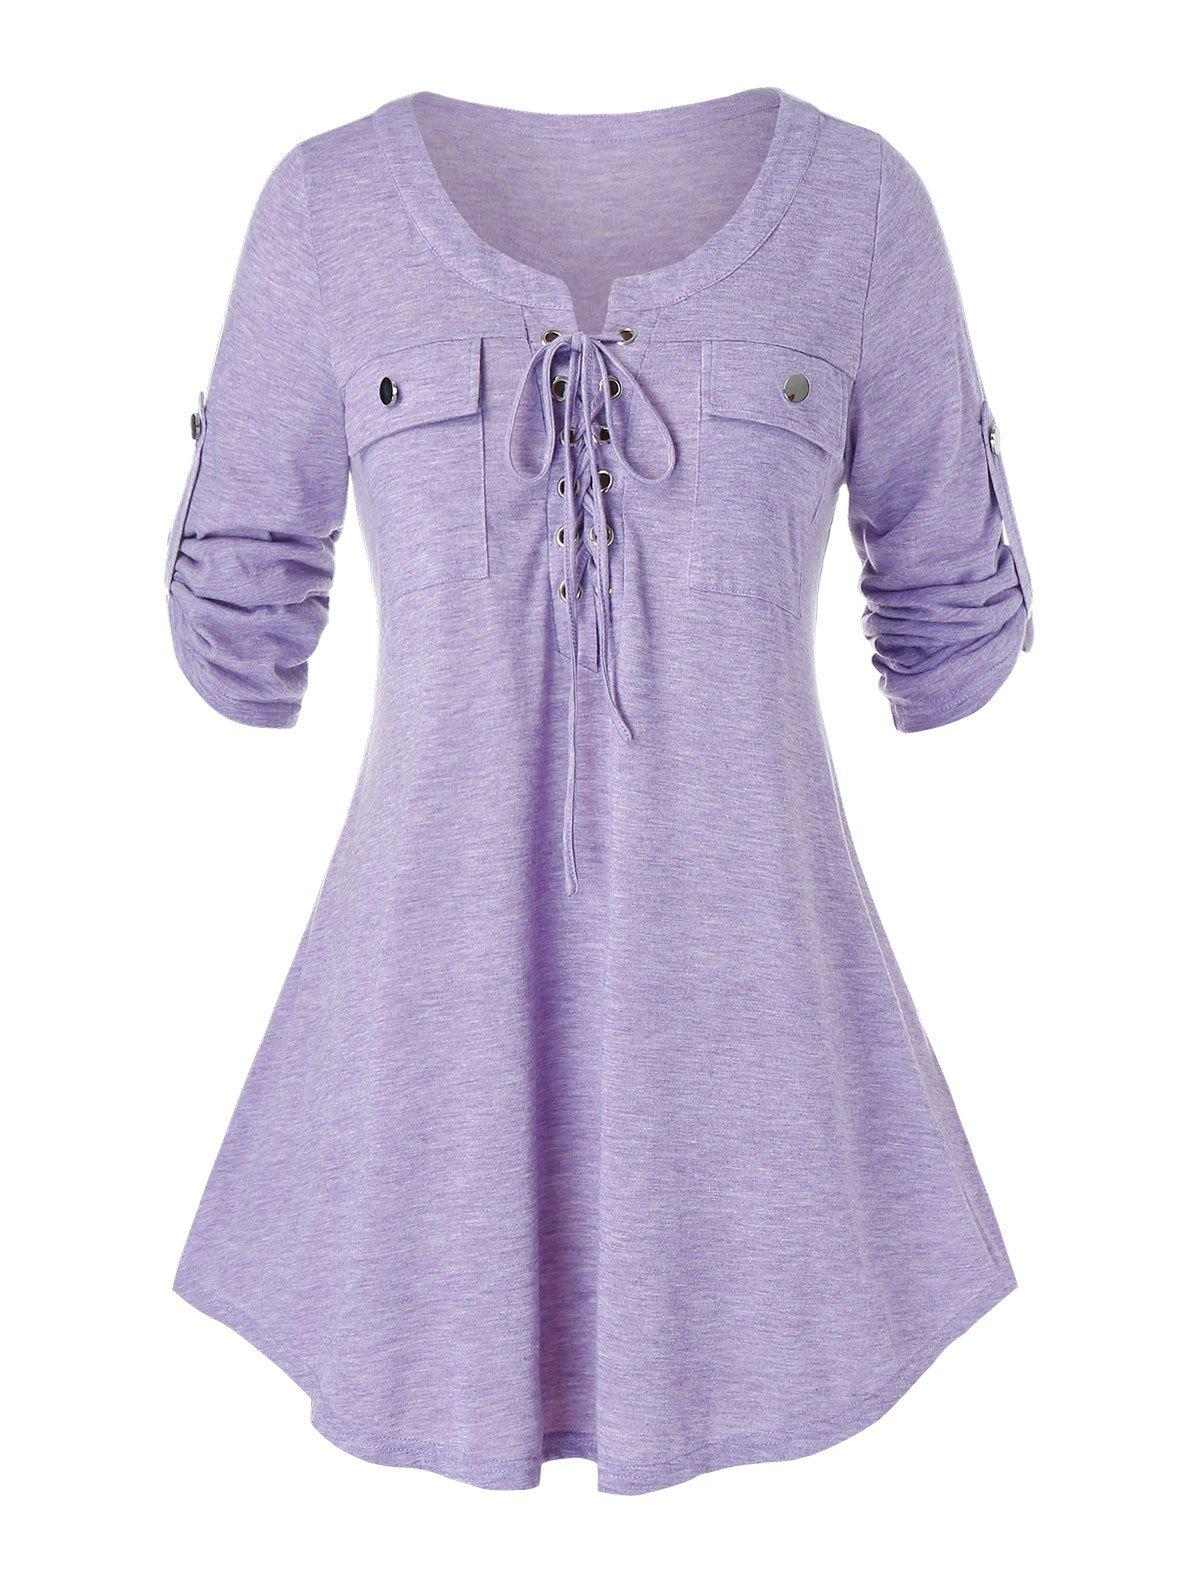 Plus Size Lace Up Heather Roll Tab Sleeve T-shirt - PURPLE MIMOSA 4X